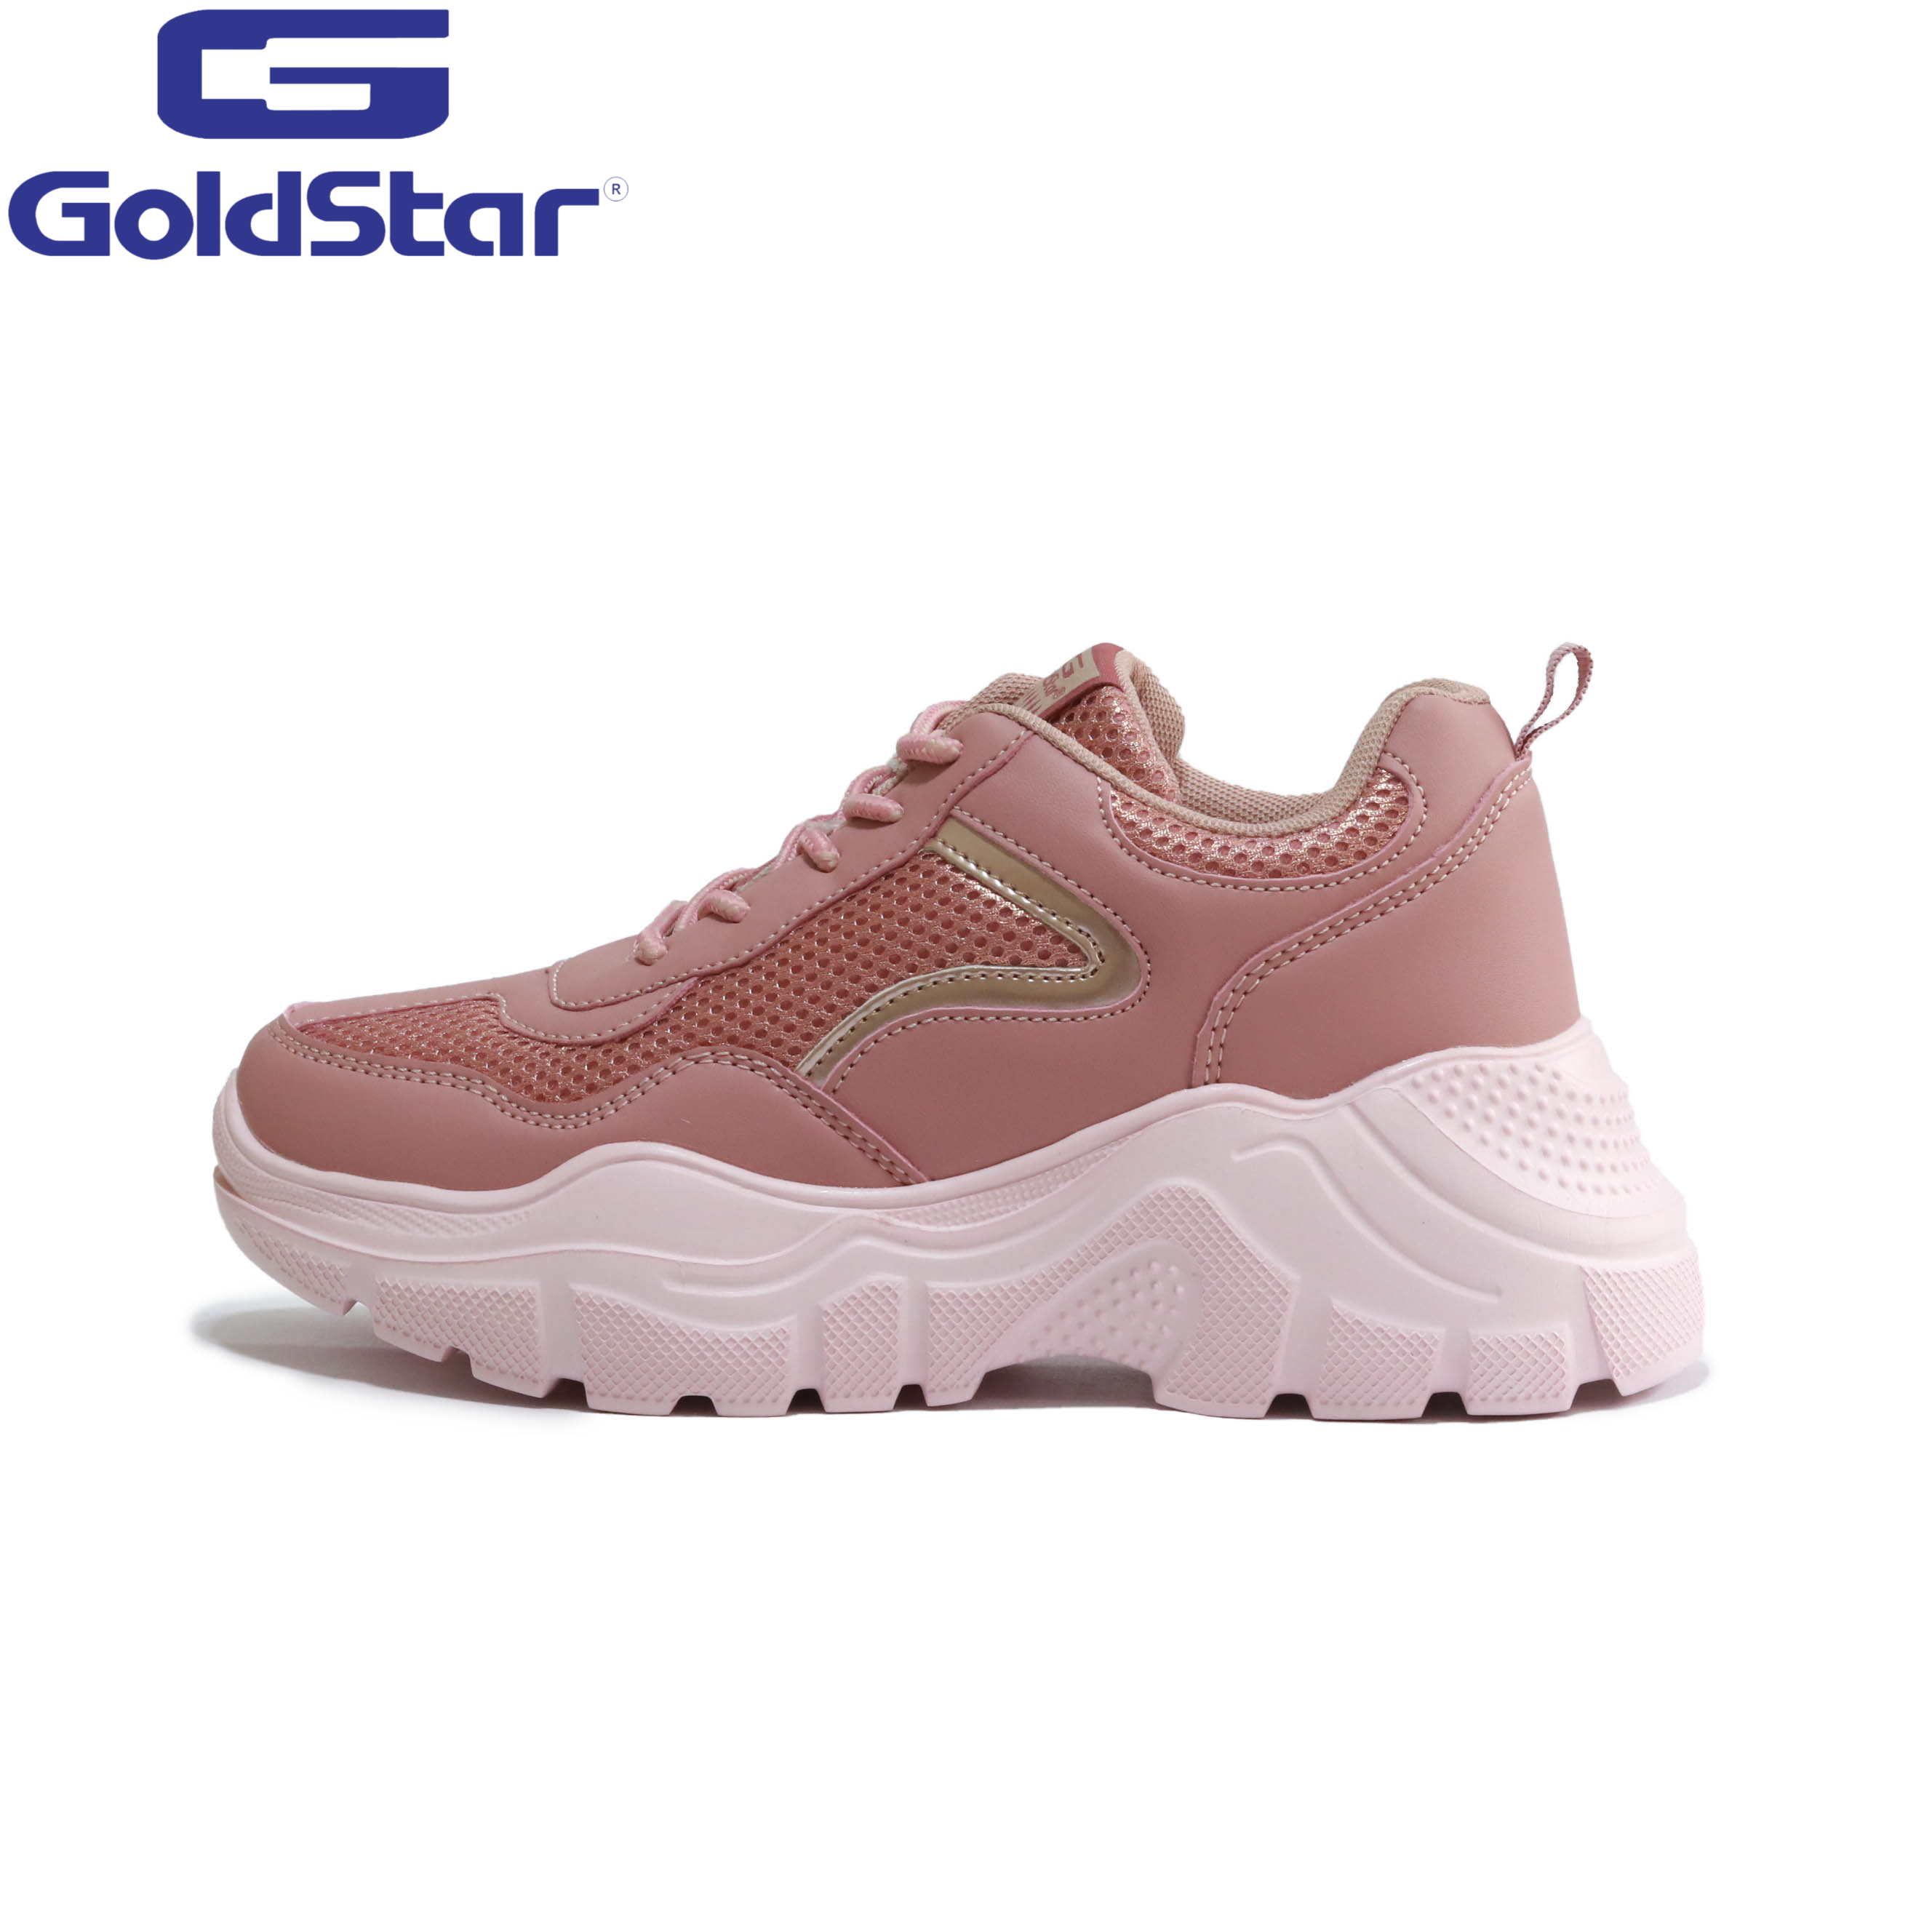 Goldstar Baby Pink Sports Shoes For Women - 9135